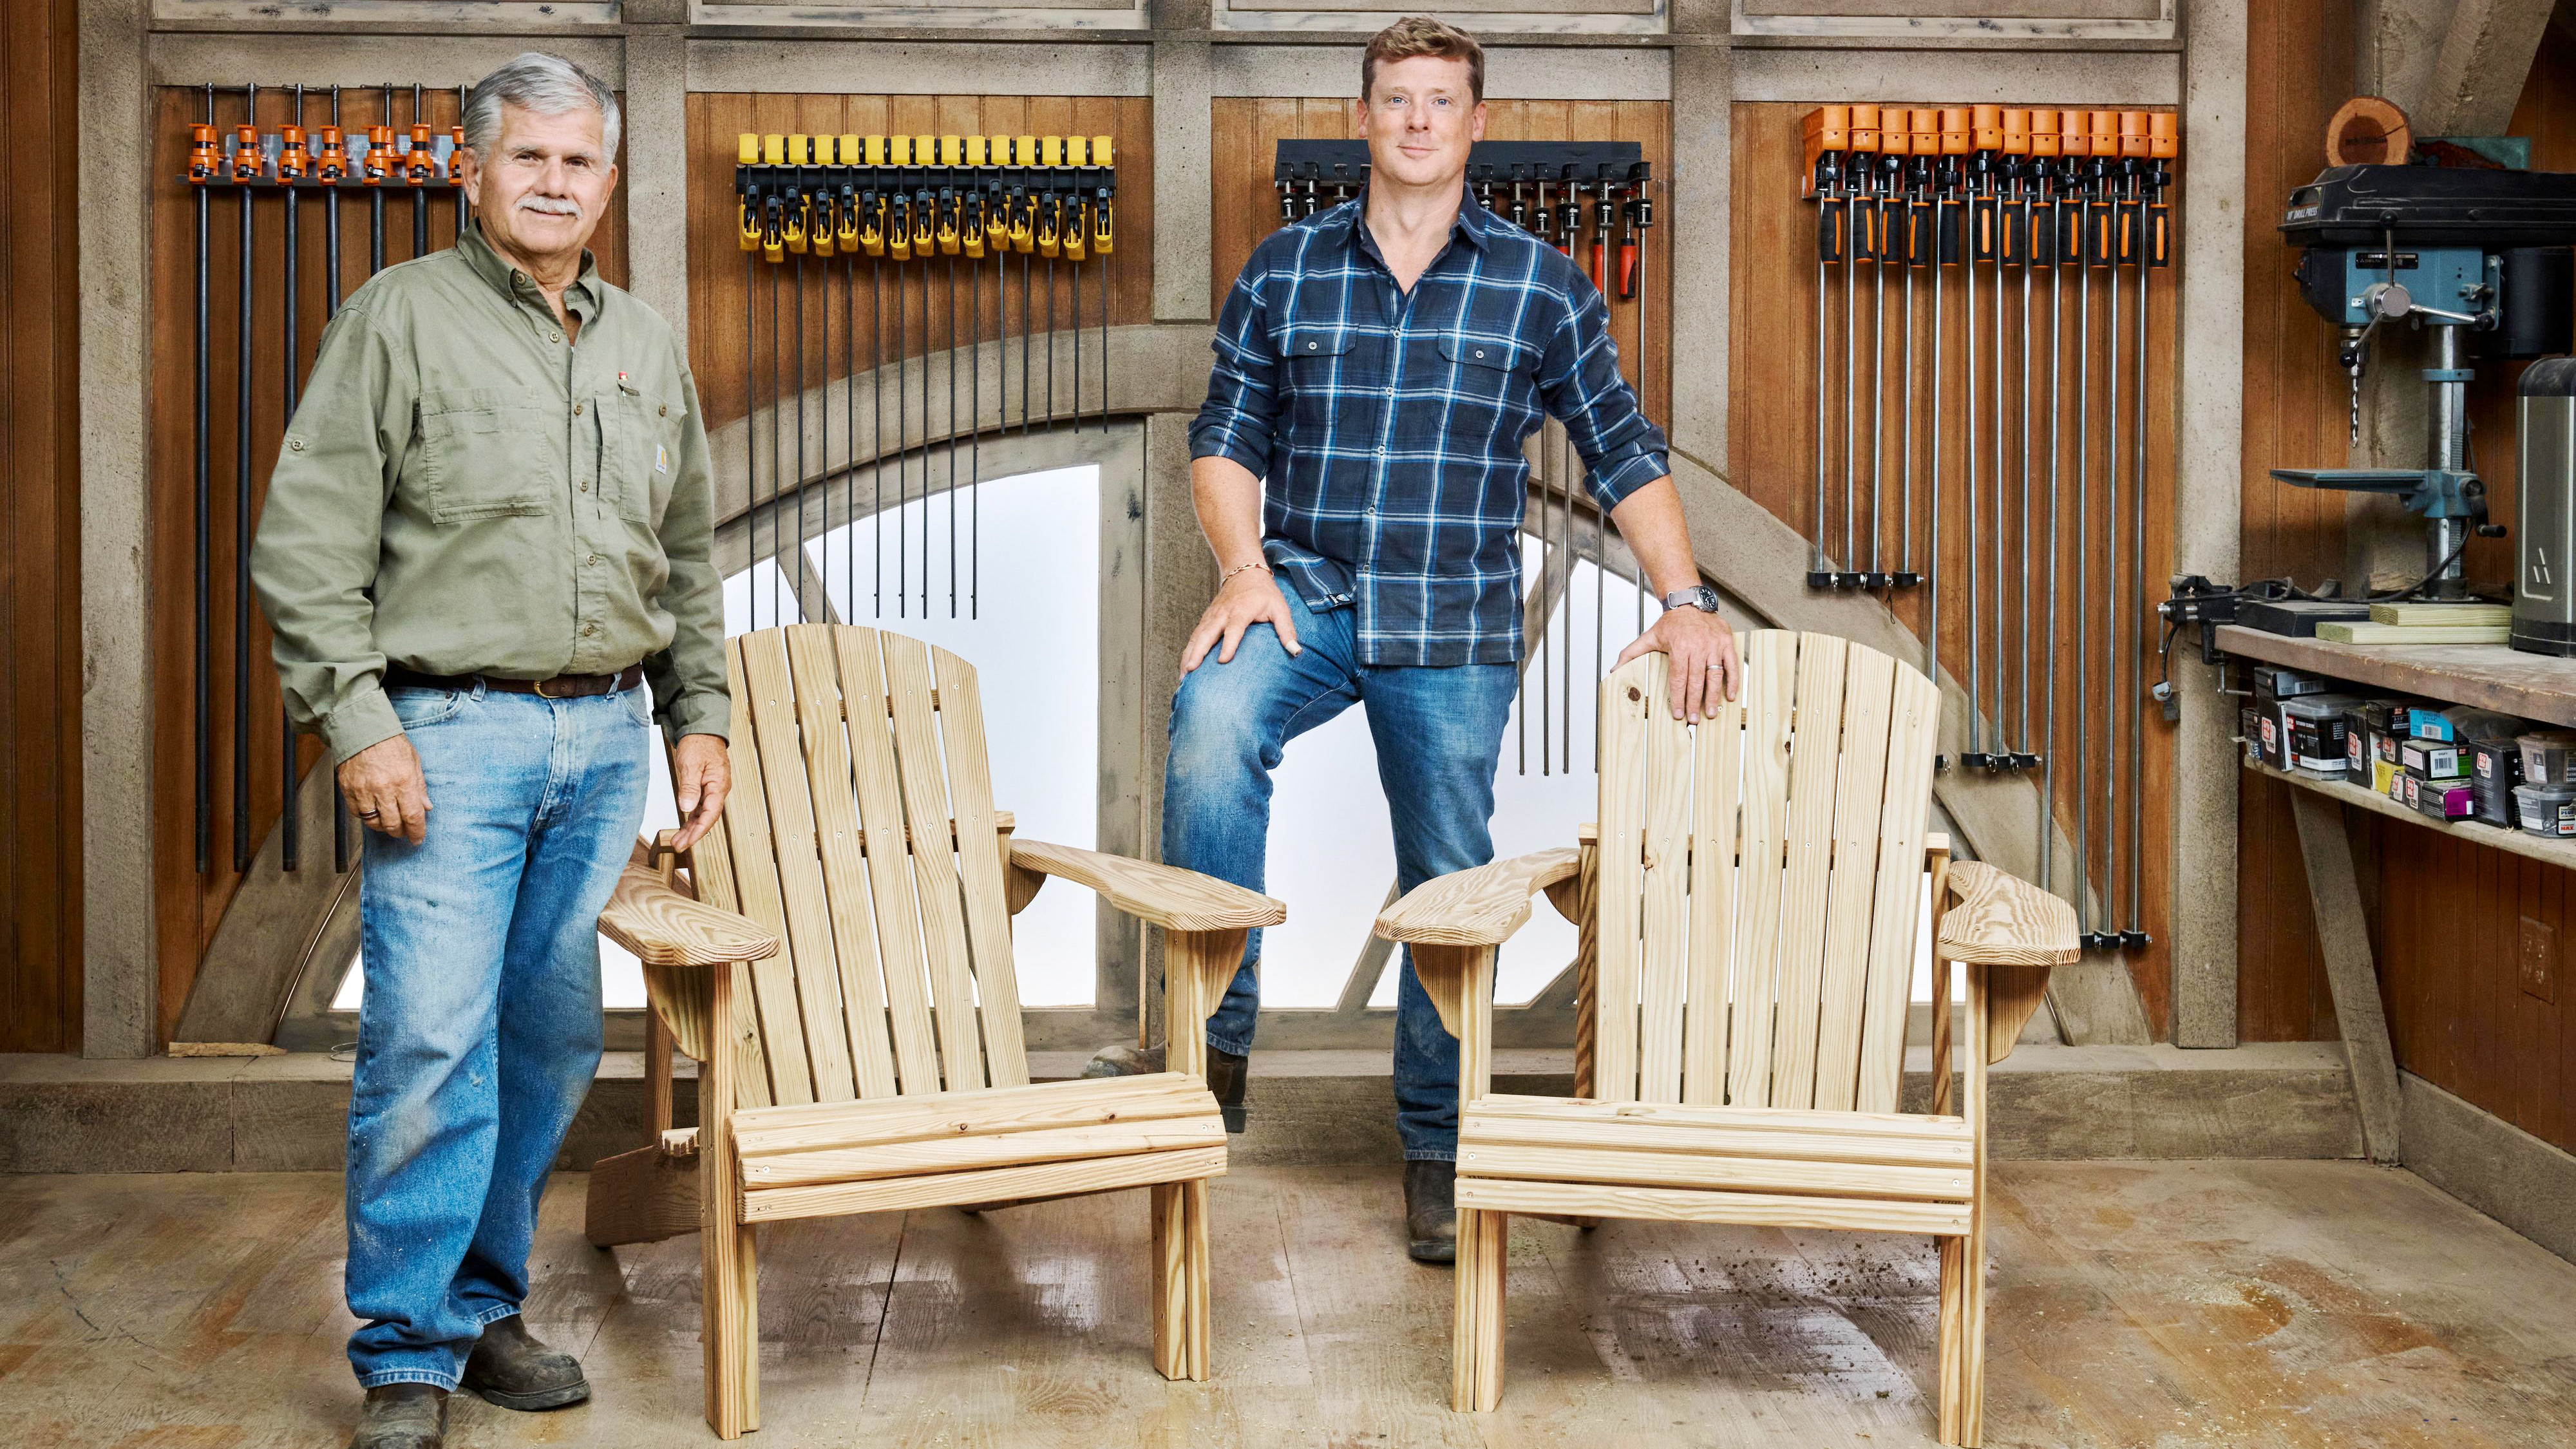 Summer 2021, Build It, Adirondack chair, Tom Silva and Kevin O'Connor